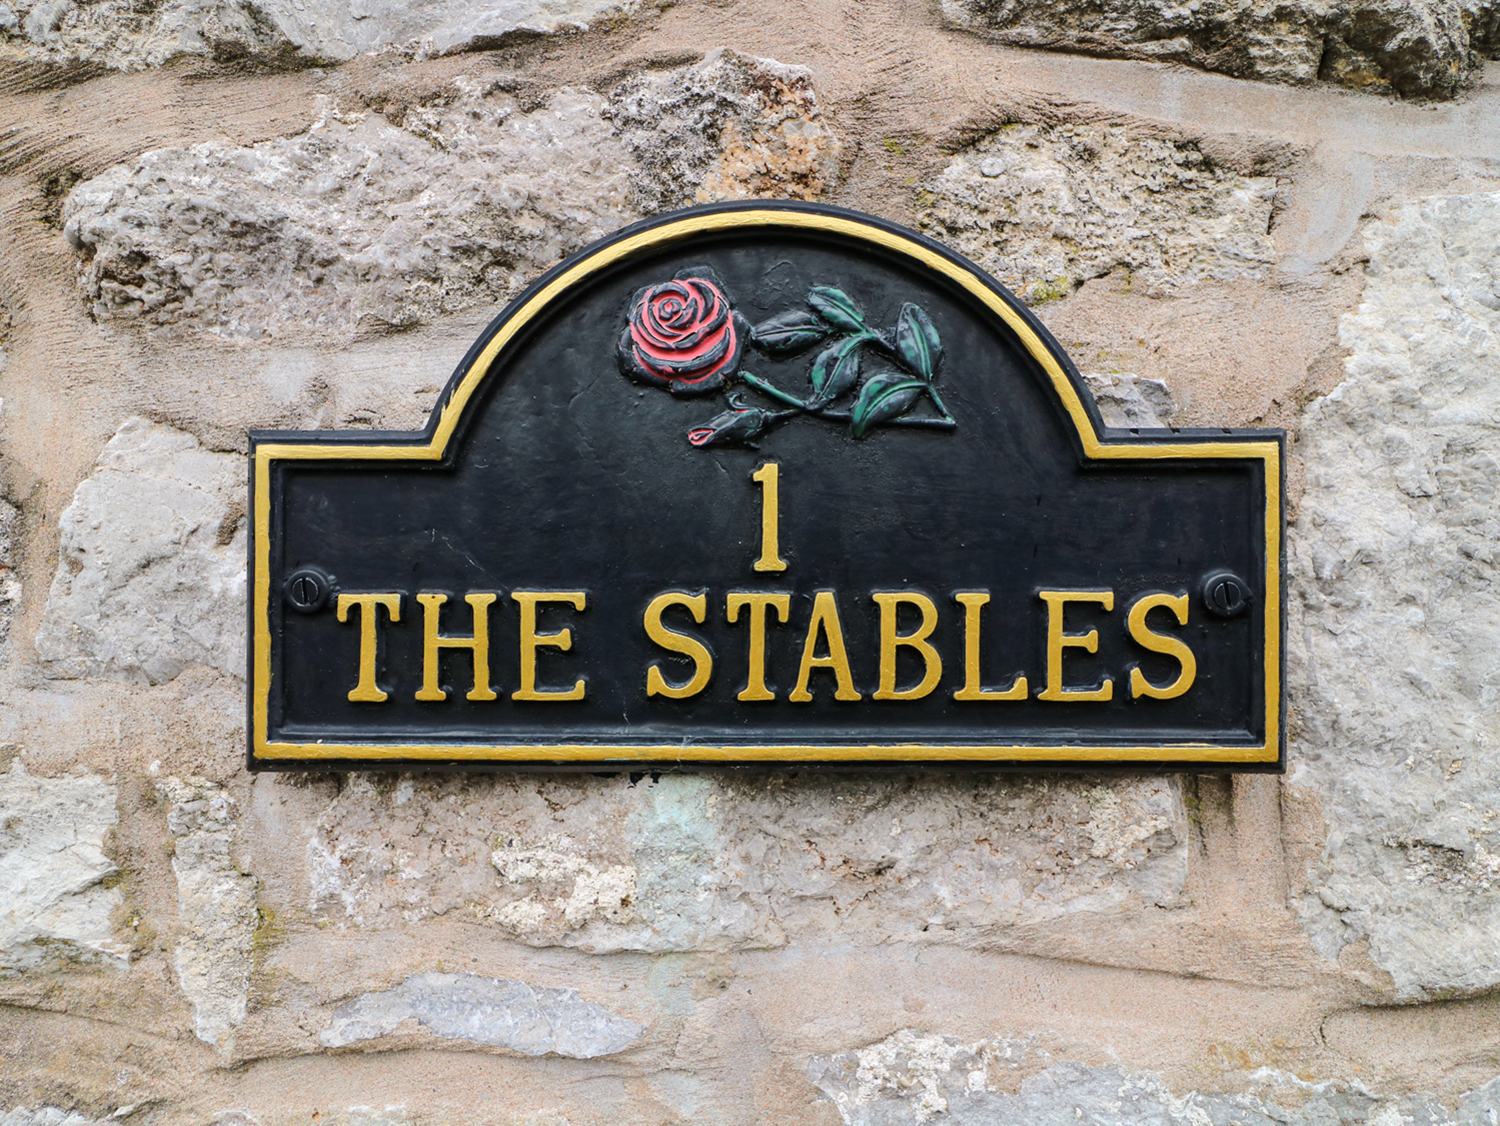 1 The Stables Image 1